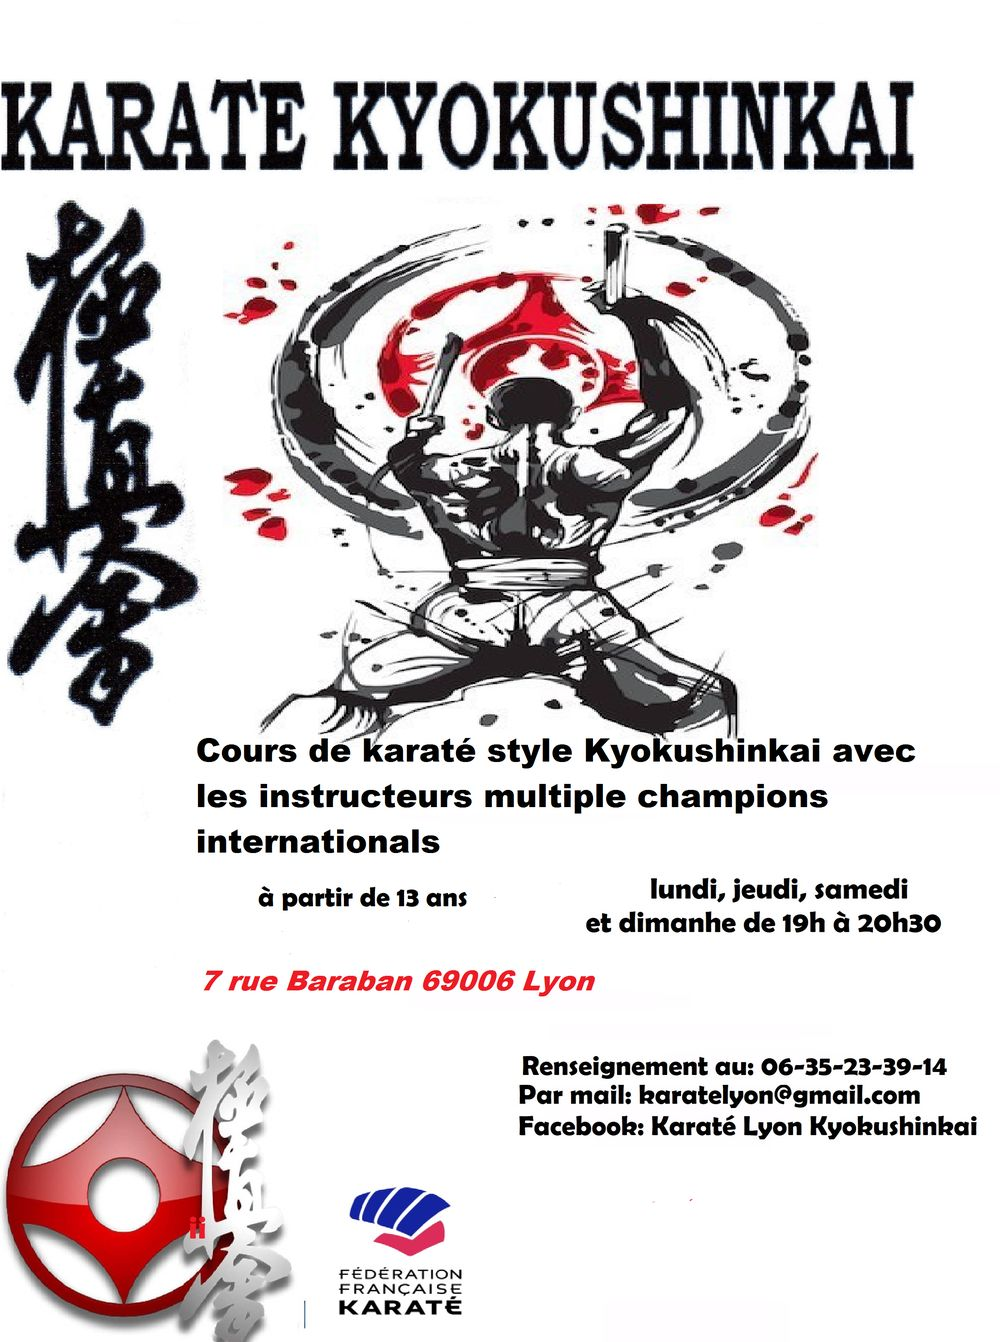 Karate Lyon Kyokushinkai - photo du club